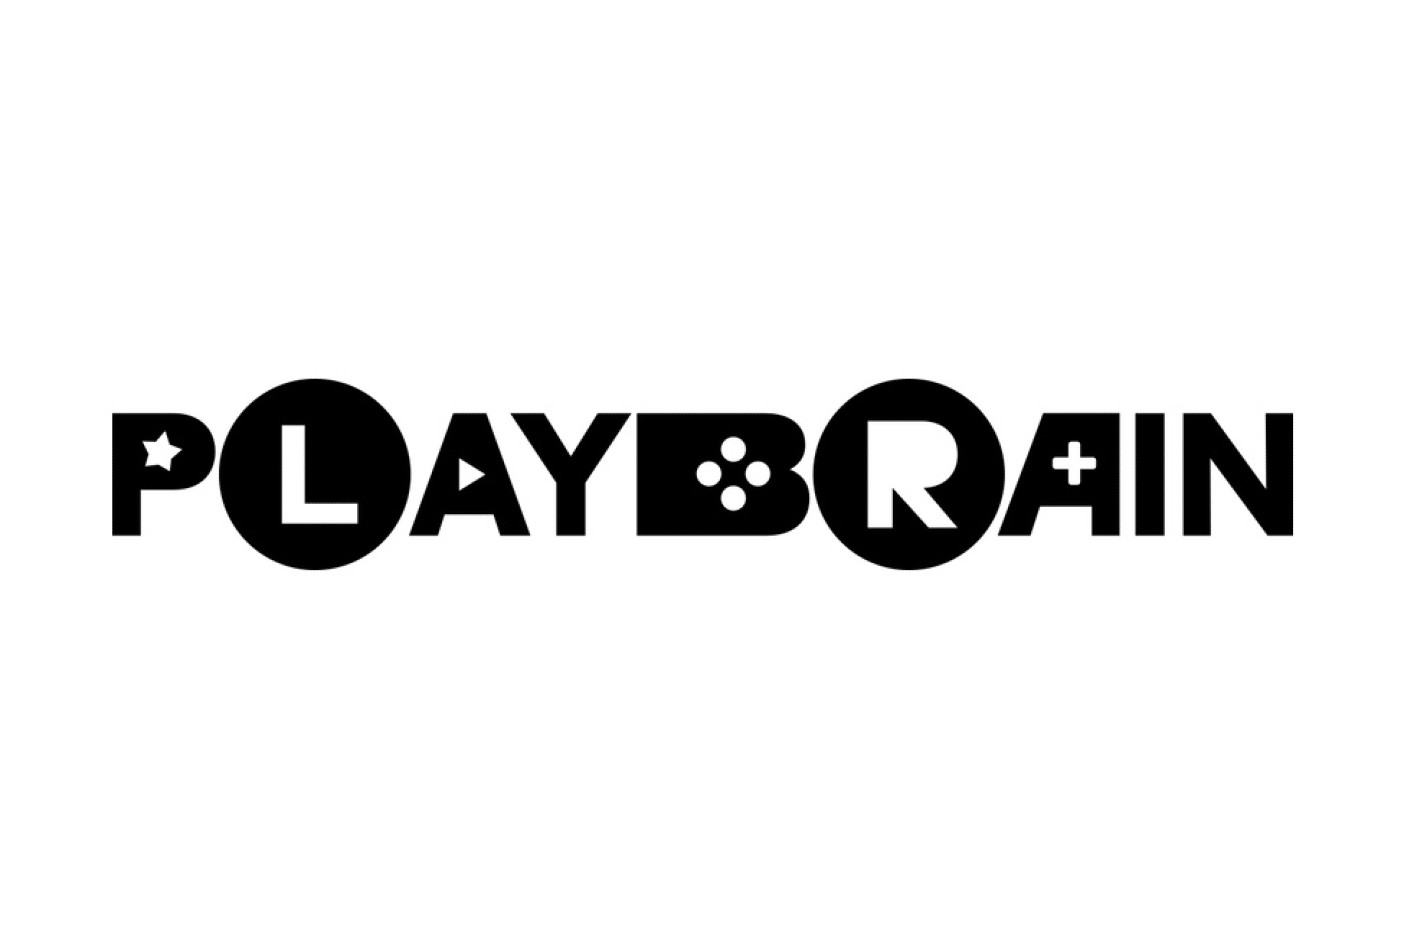 PlayBrain Secures $6 million in Series A funding round